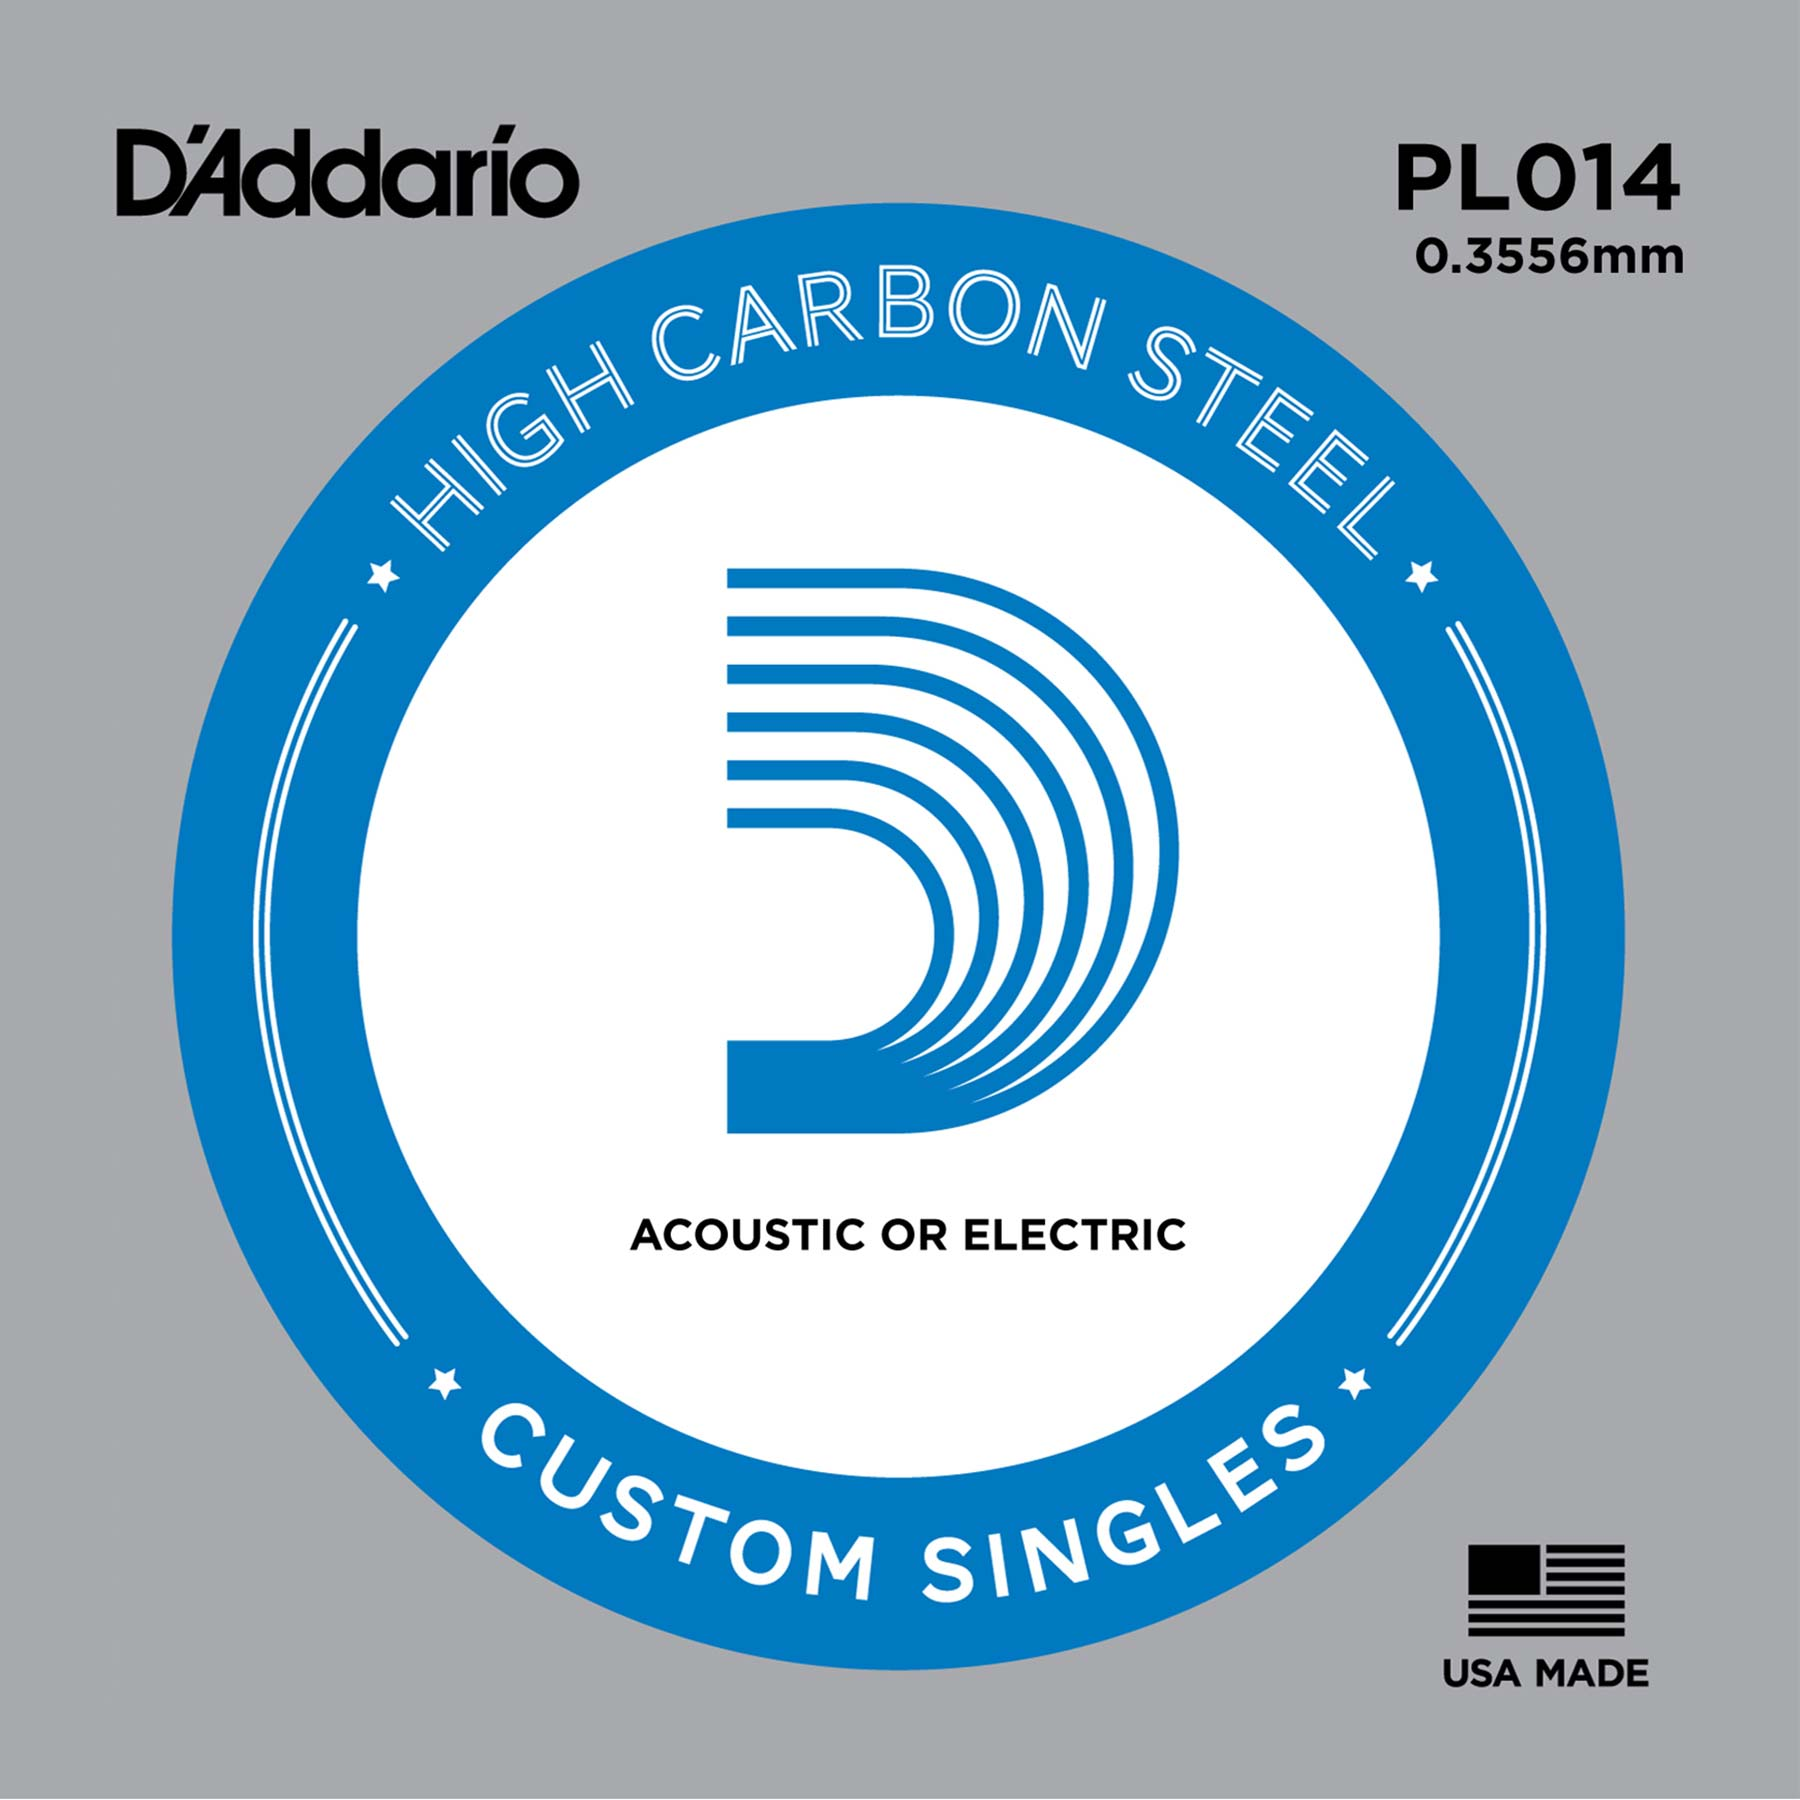 D'ADDARIO PLAIN STEEL GUITAR STRING 014